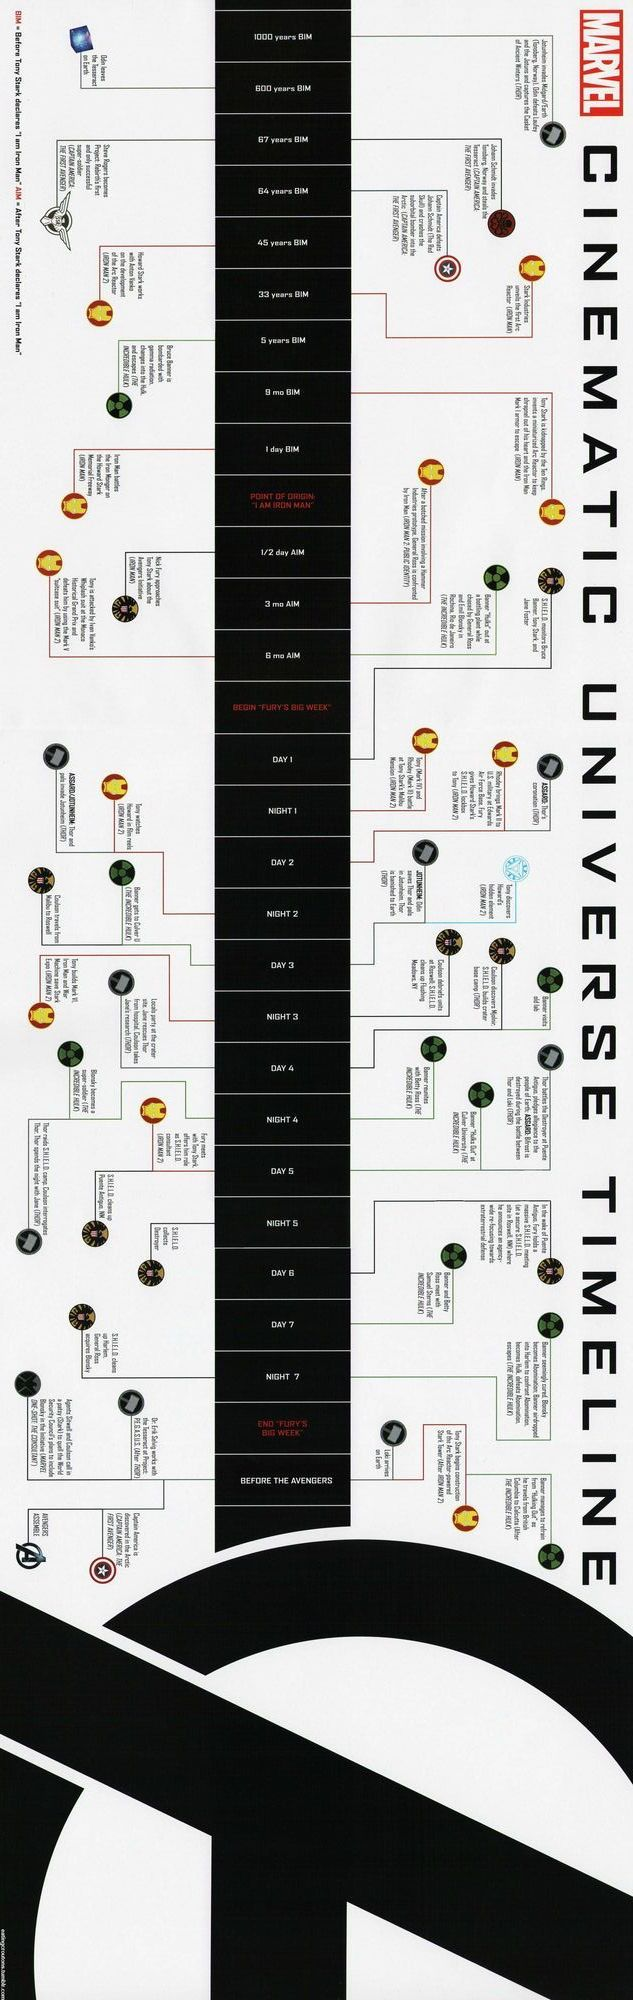 Cinematic Universe Timeline Marvel. https://pagez.com/4136/36-rickdiculous-rick-and-morty-facts